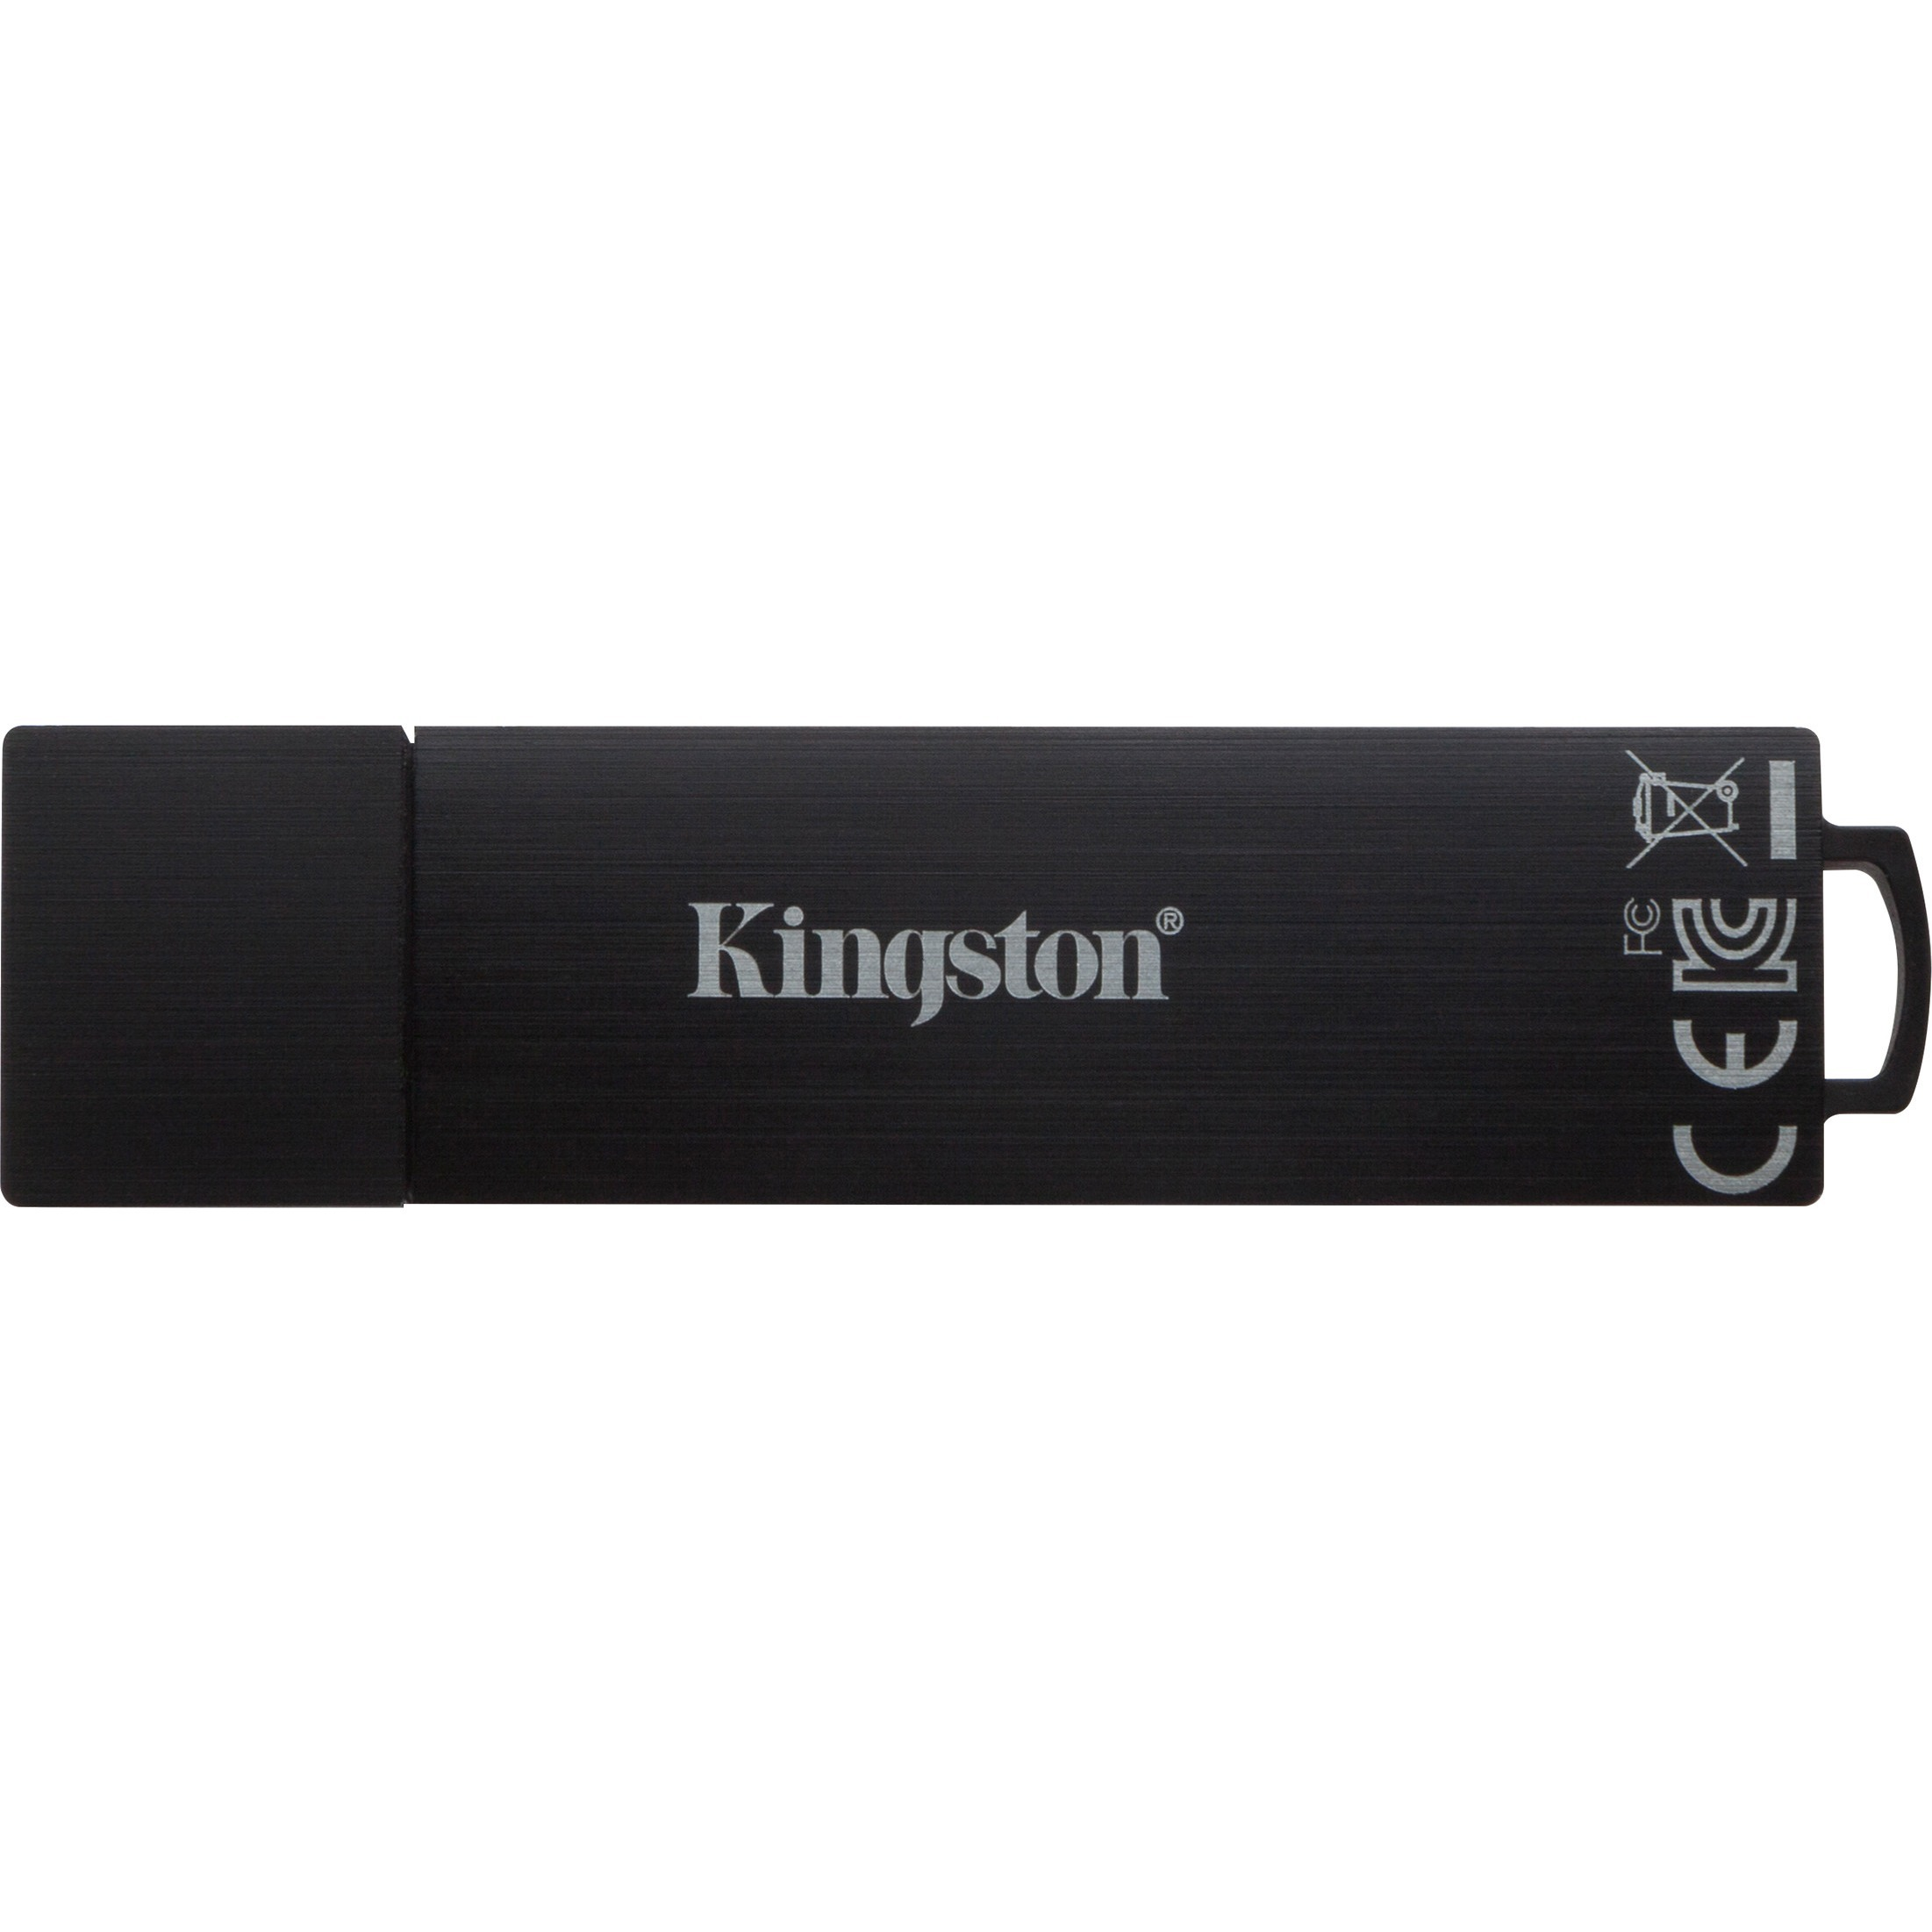 Kingston D300 64 GB USB 3.0 Flash Drive - 256-bit AES